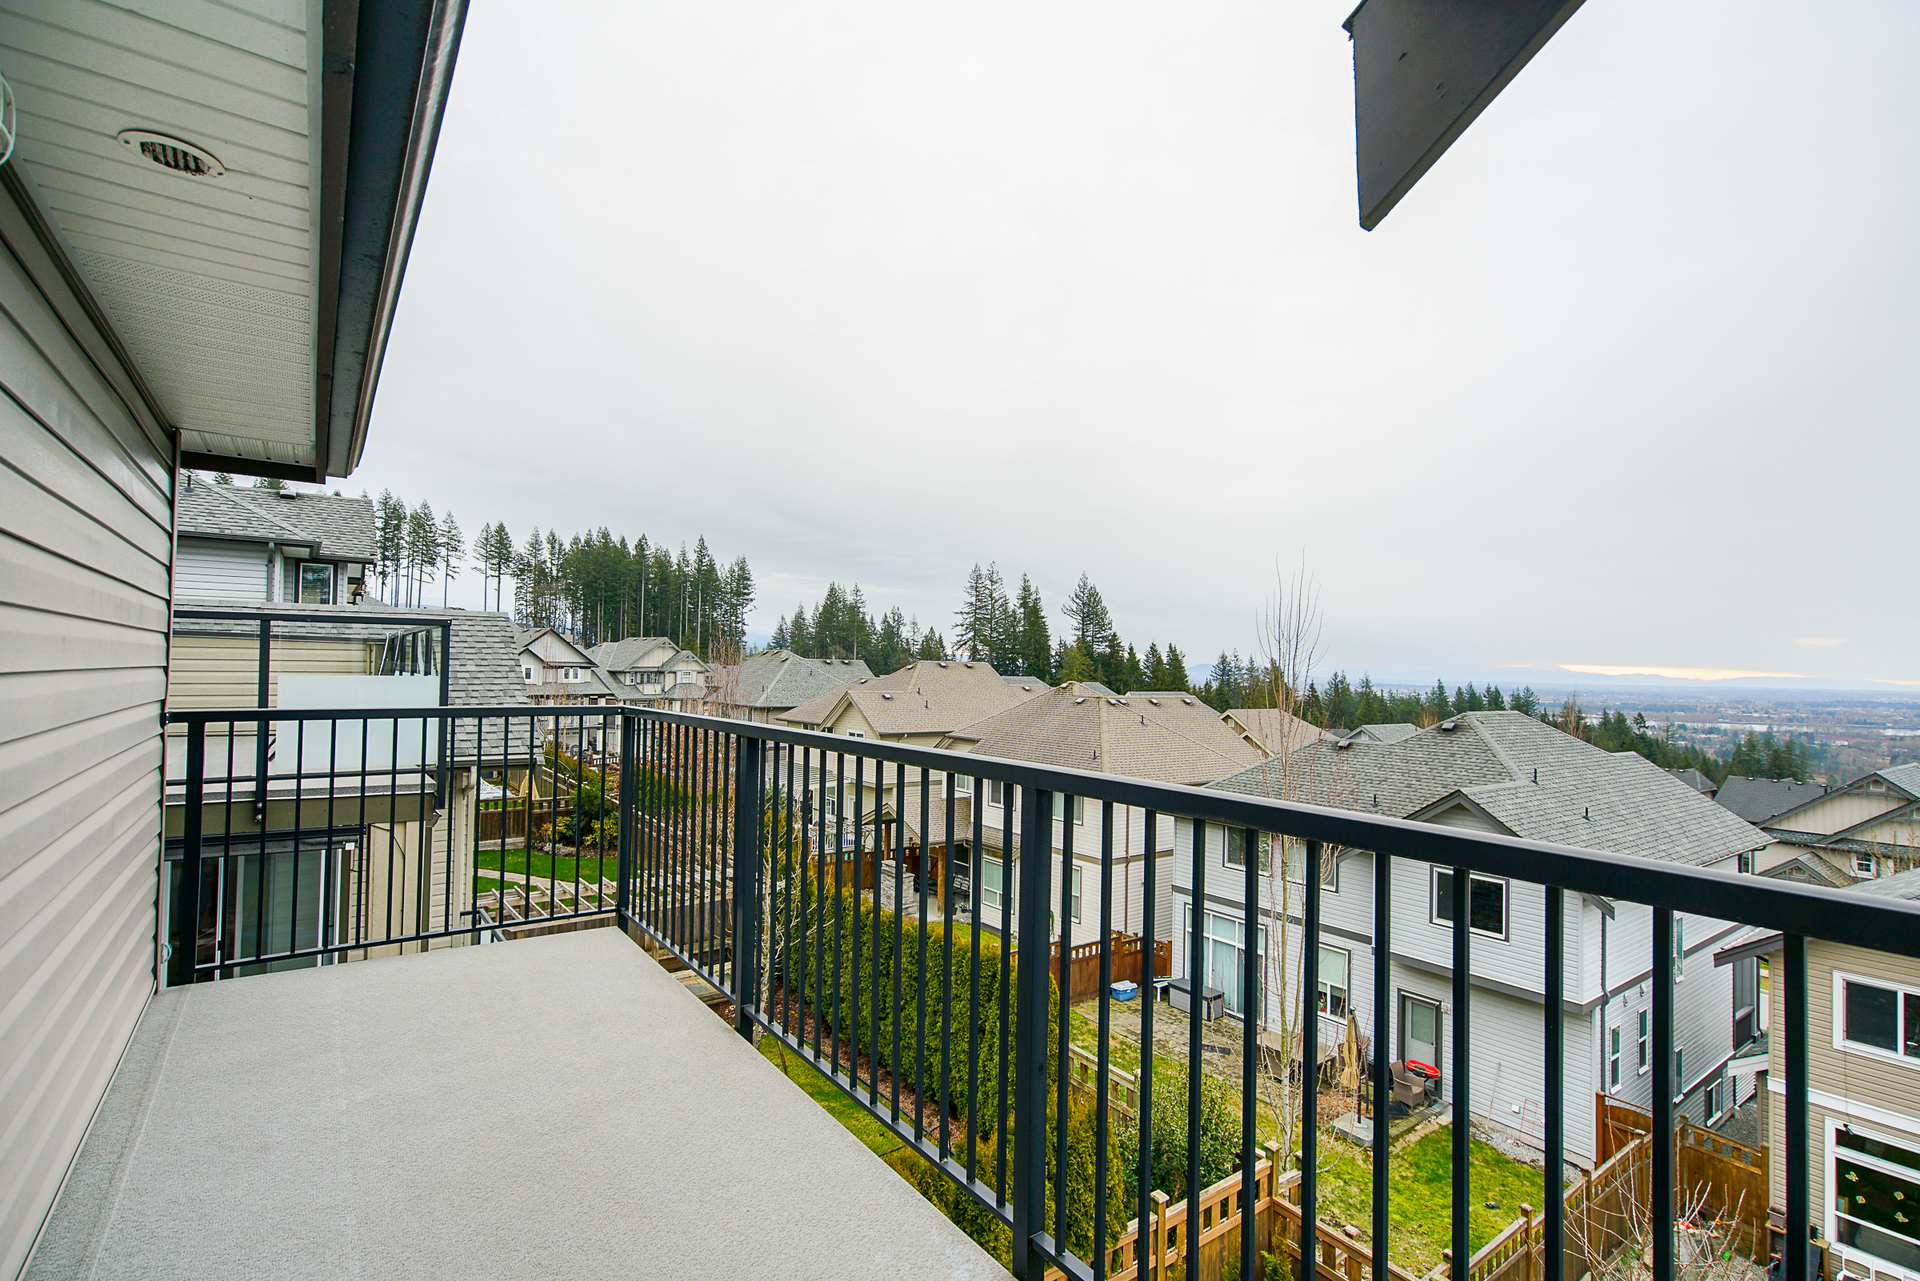 3474-stephens-court-coquitlam-31 at 3474 Stephens Court, Burke Mountain, Coquitlam